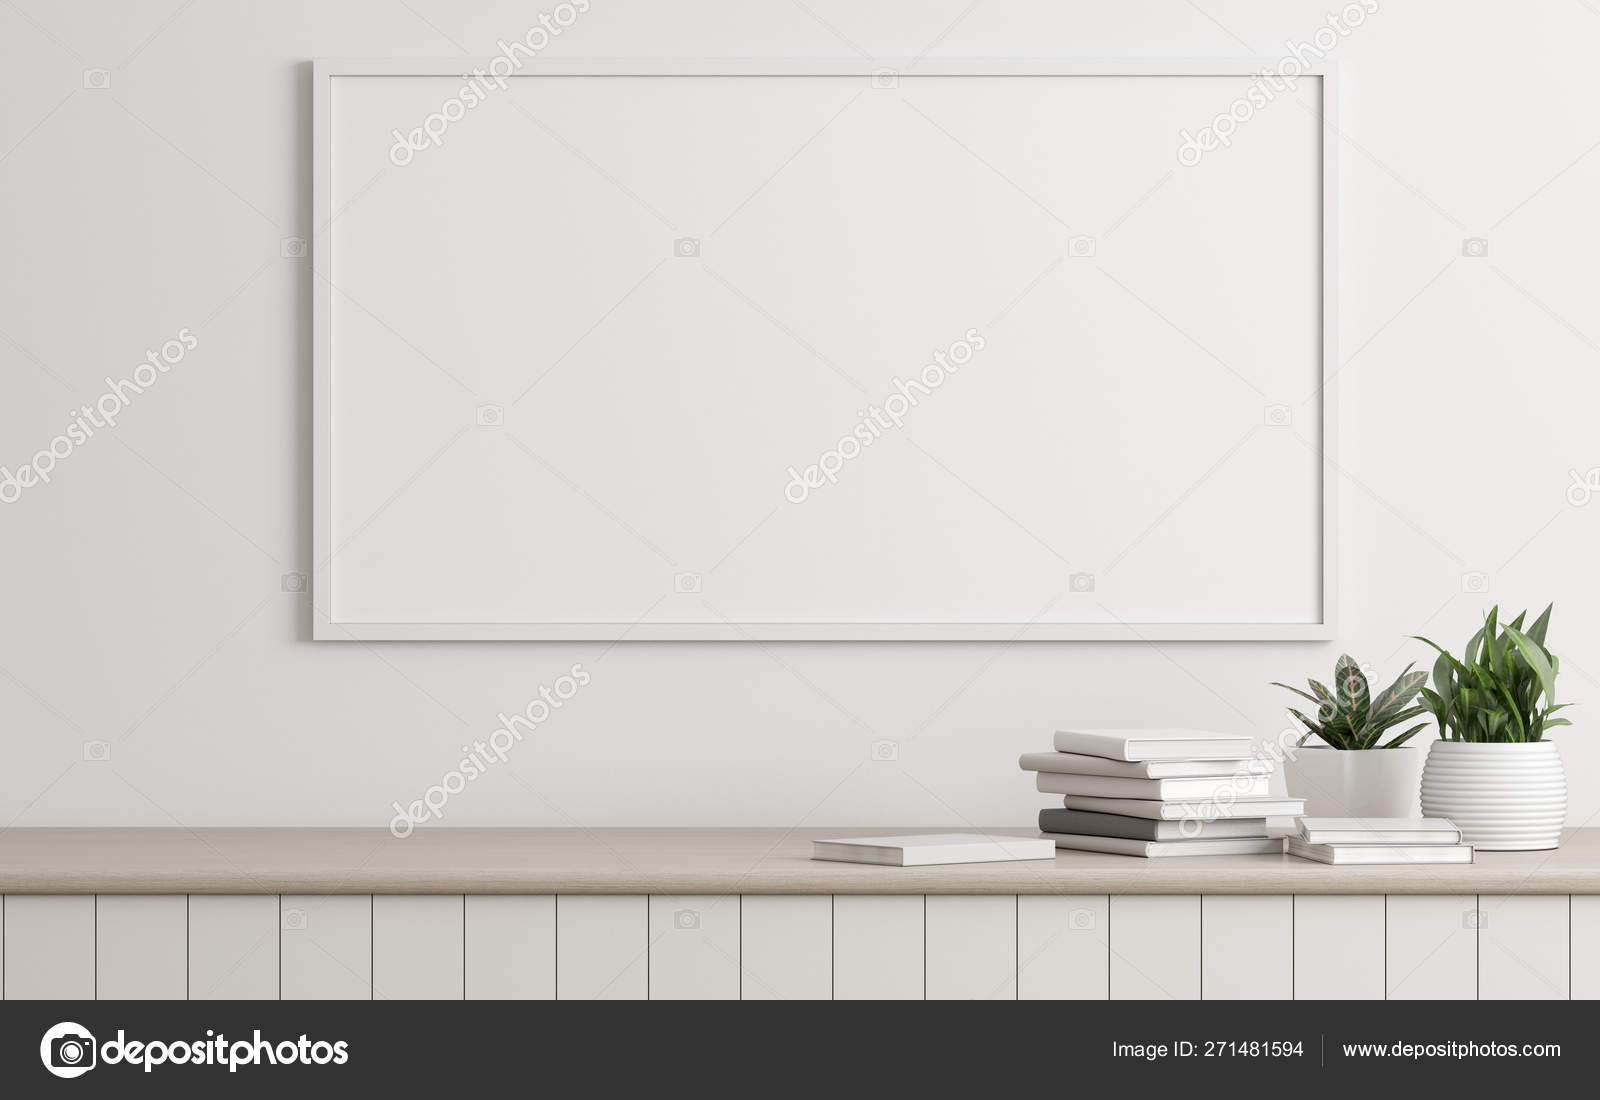 Mock Picture Frame Small Plant Vase Books White Wall Perspective Stock Photo C Nuchao 271481594